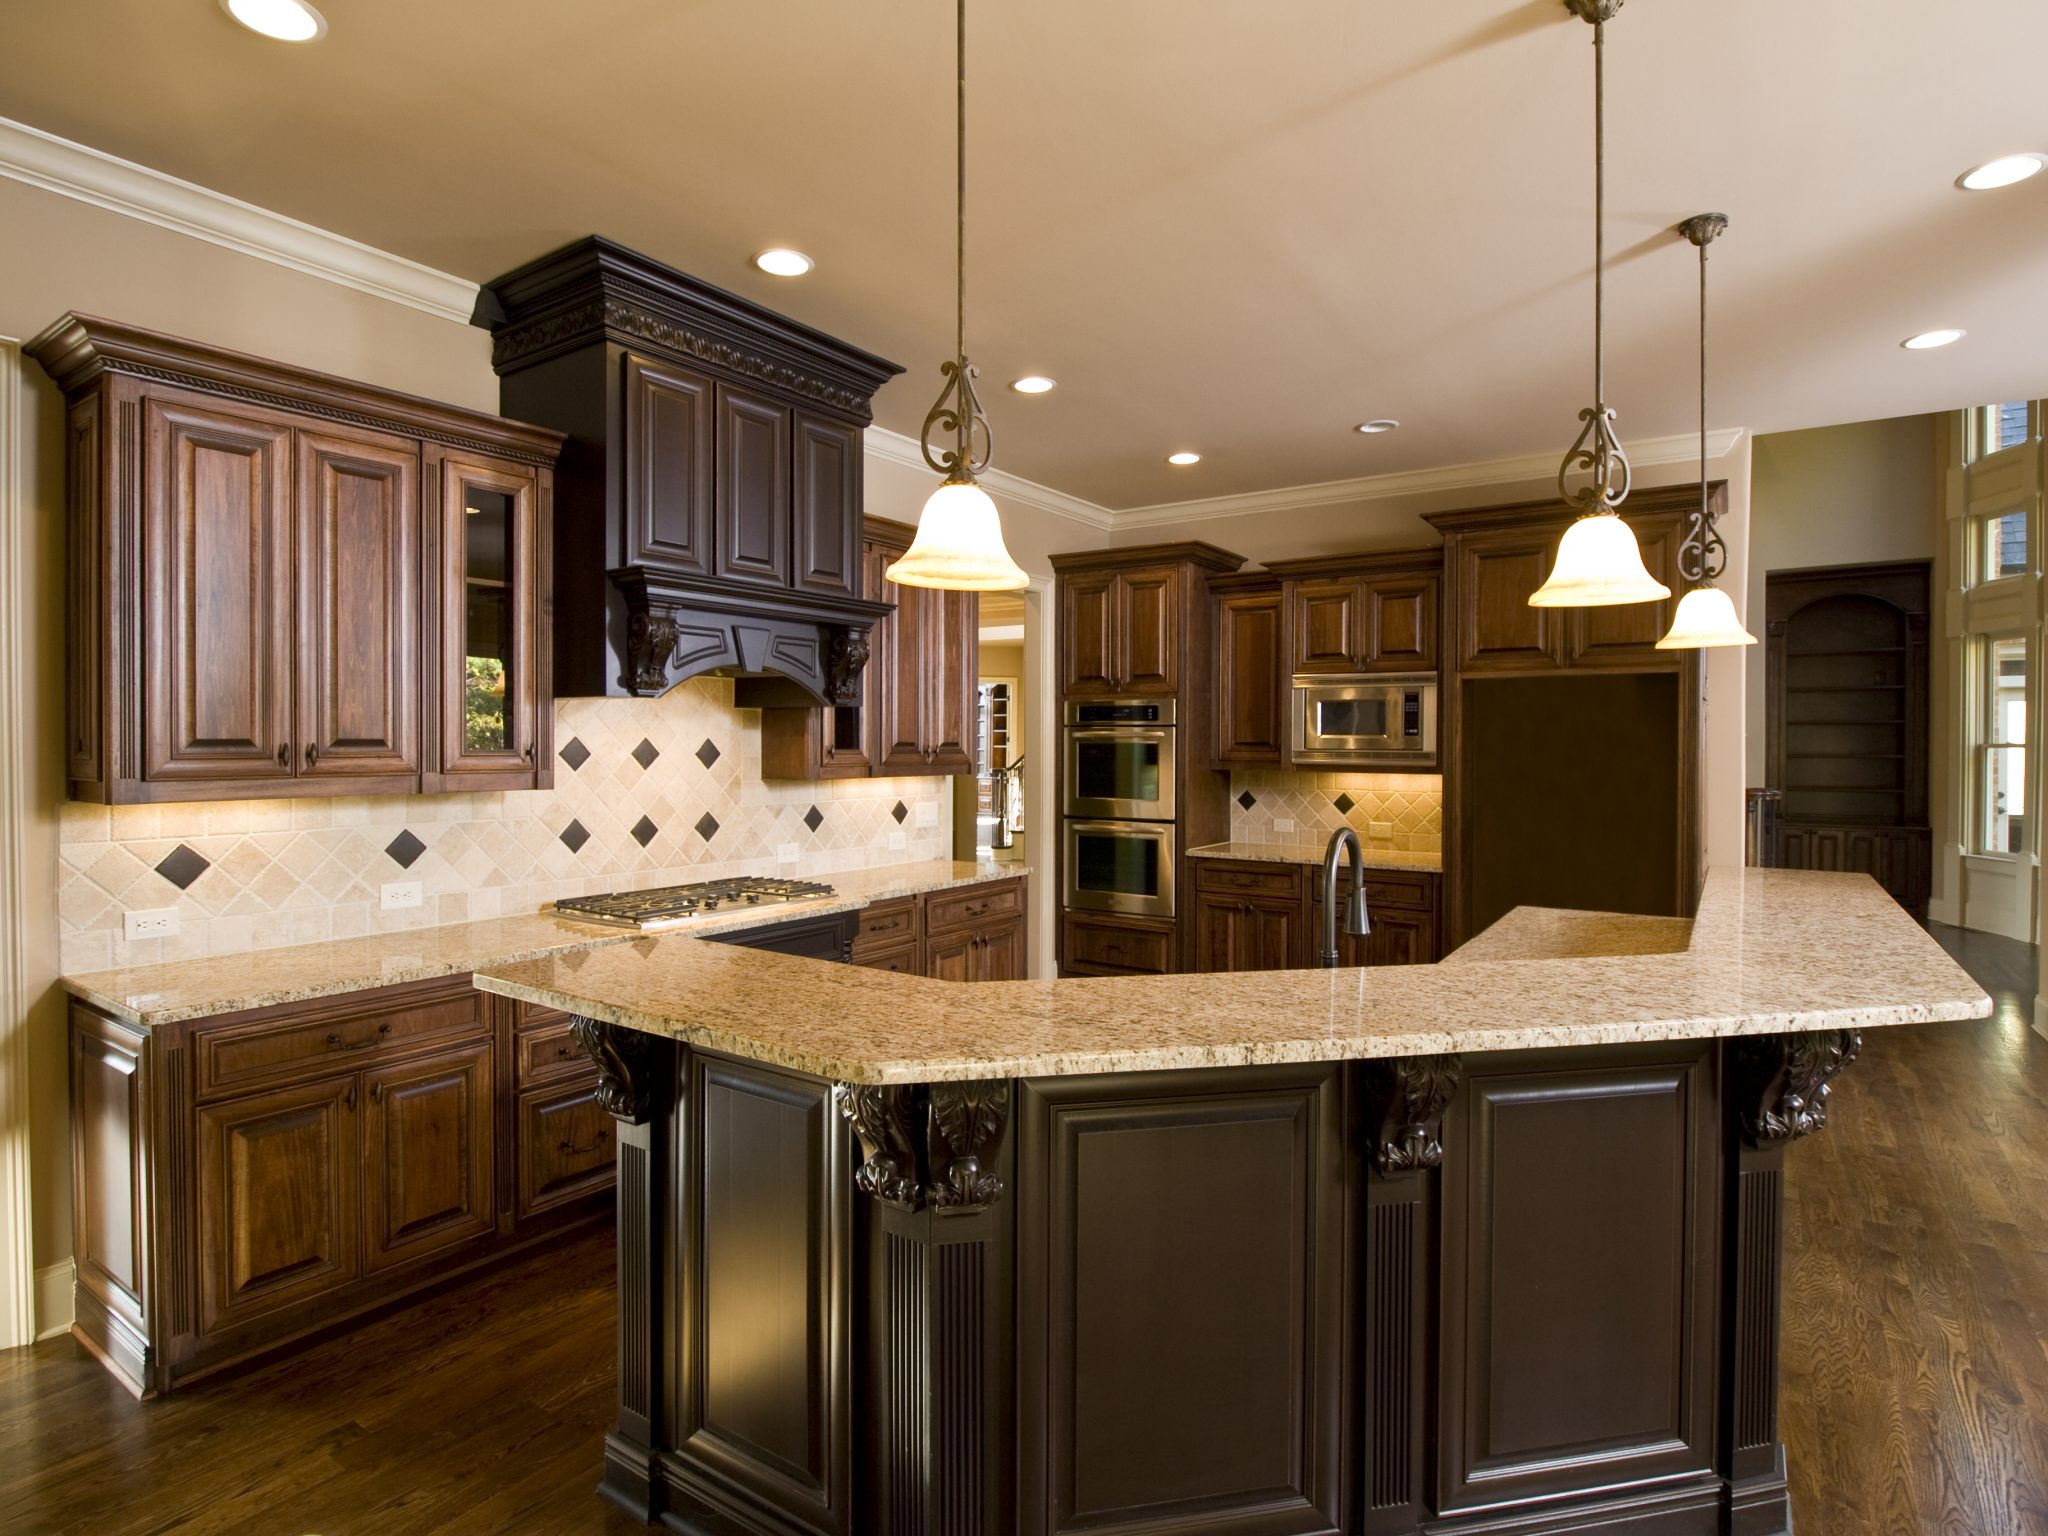 about us orlando home remodeling remodel kitchen cabinets